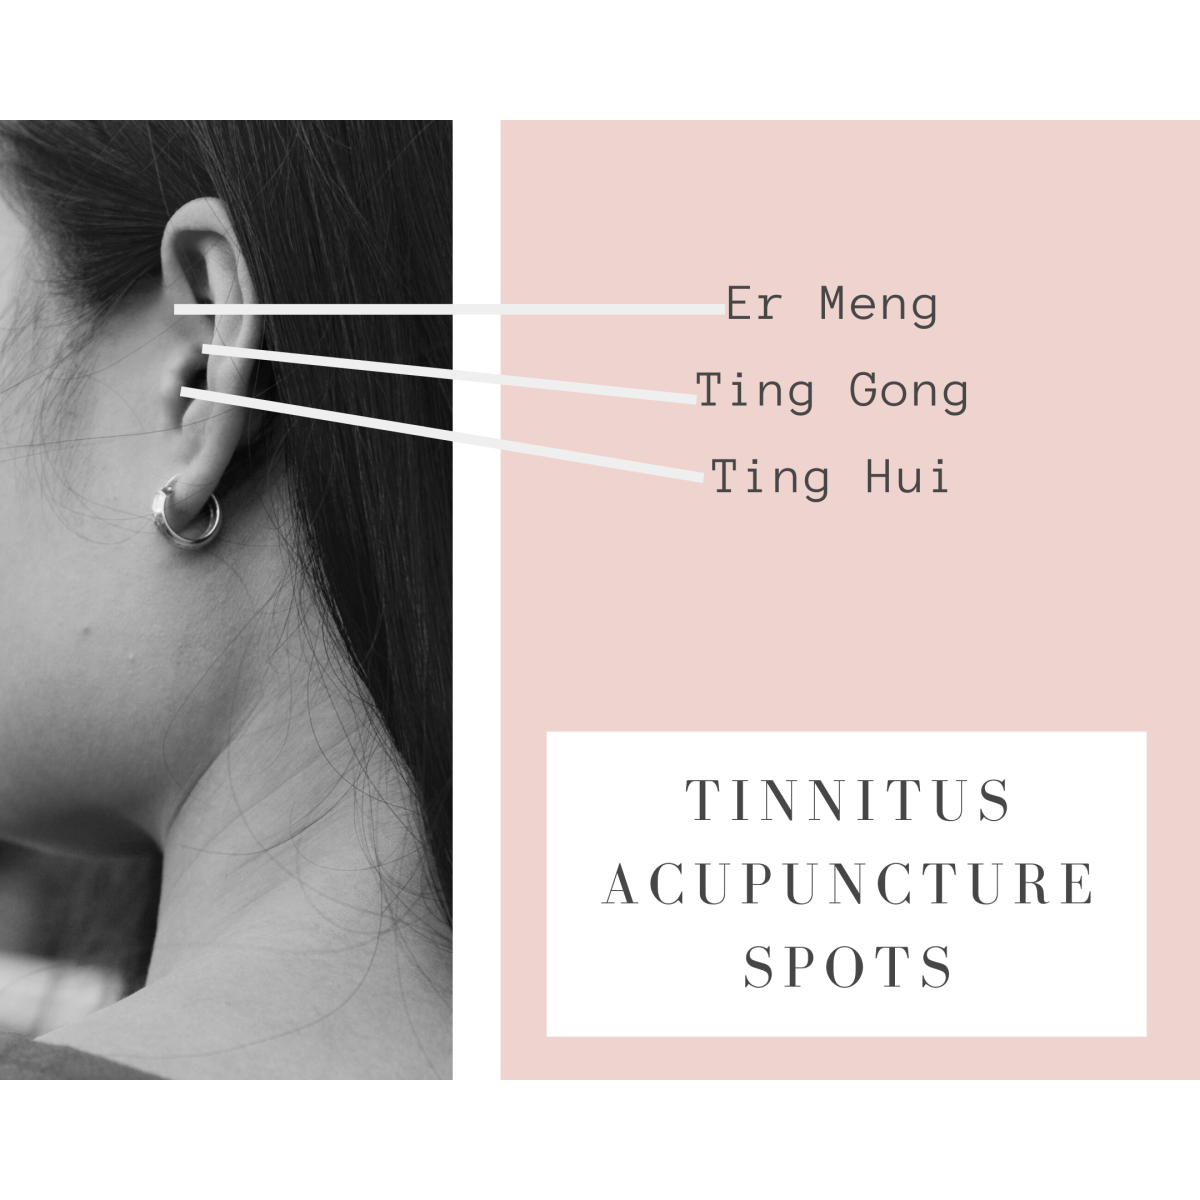 Acupuncture Spots for Tinnitus